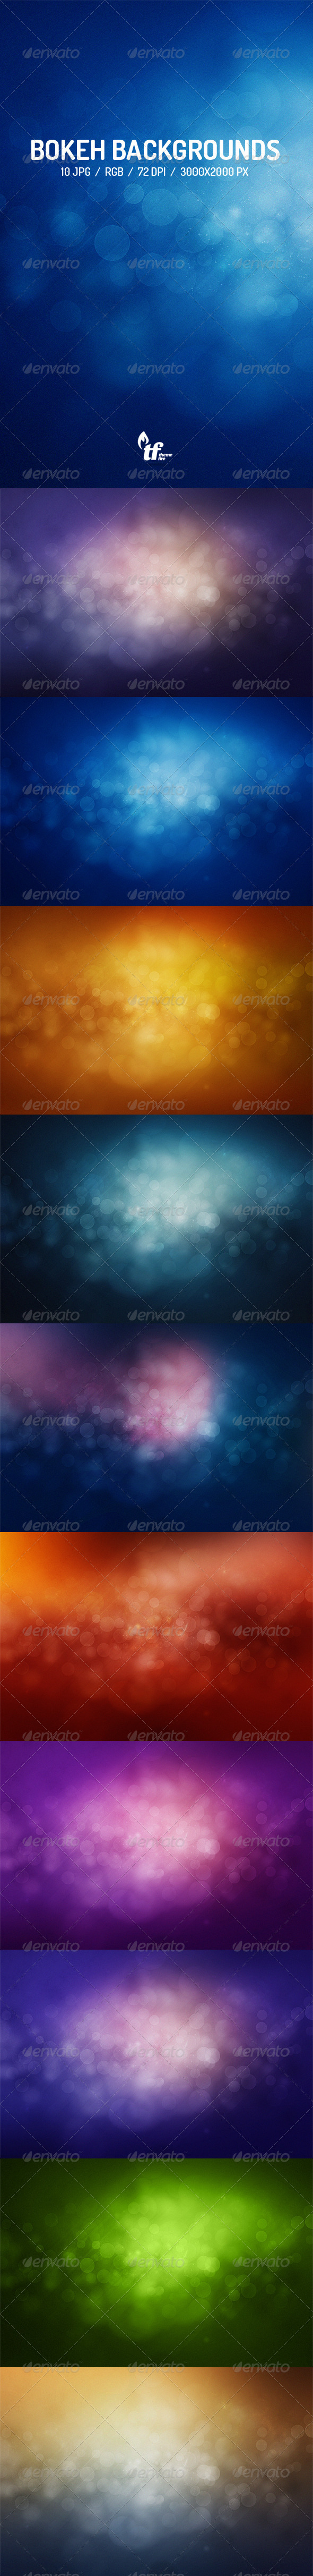 GraphicRiver Abstract Bokeh Backgrounds 7691639